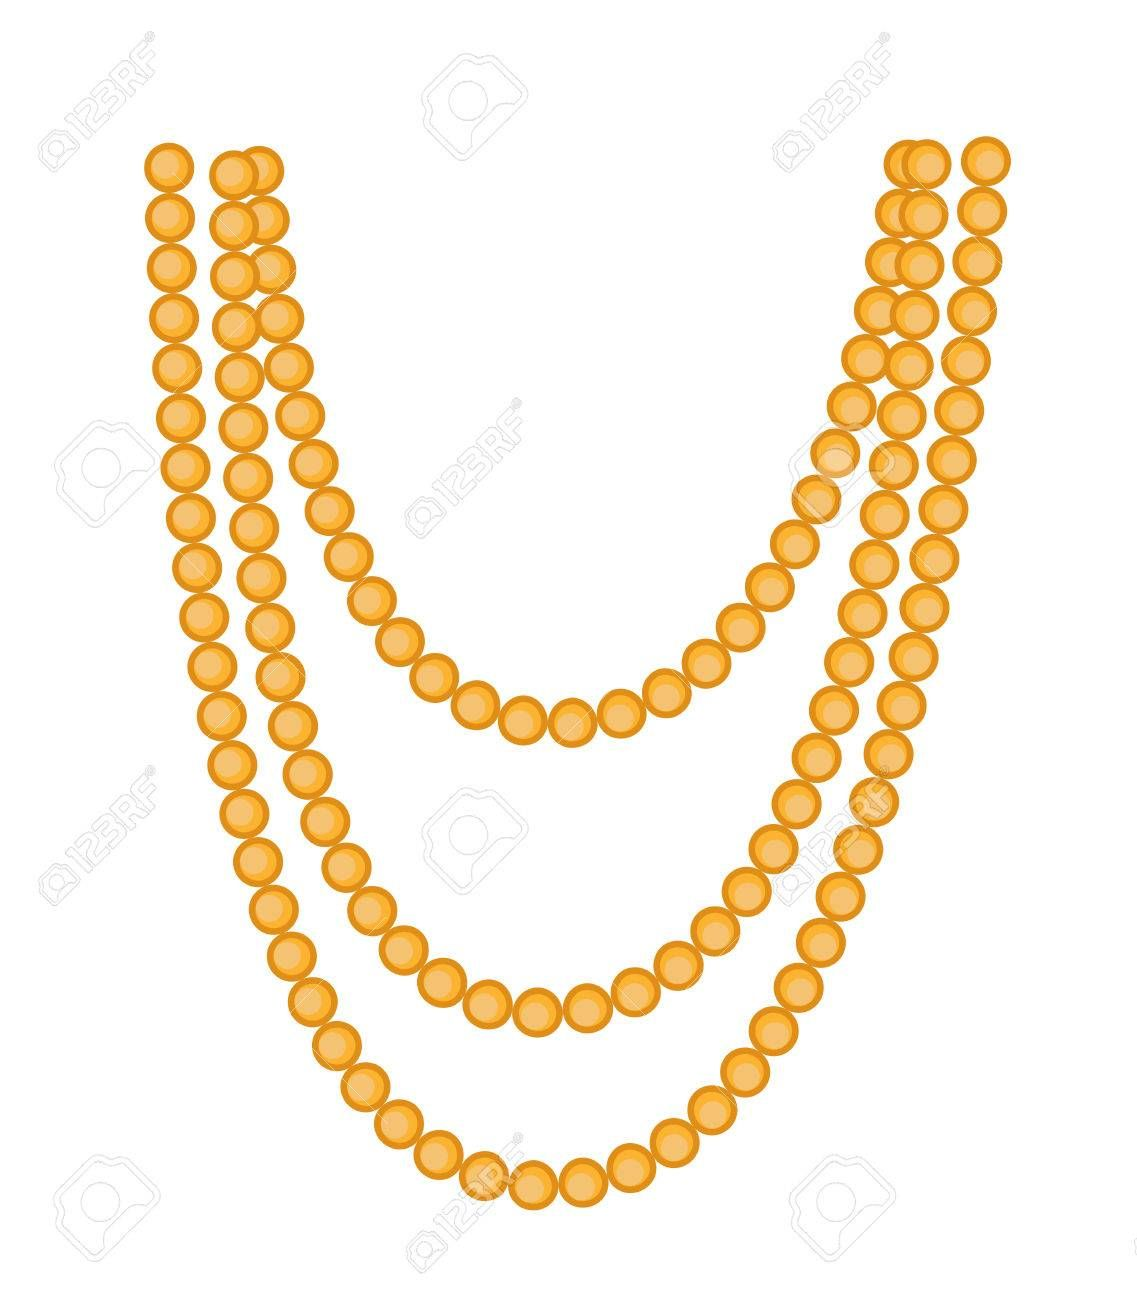 Image result for necklace clipart.